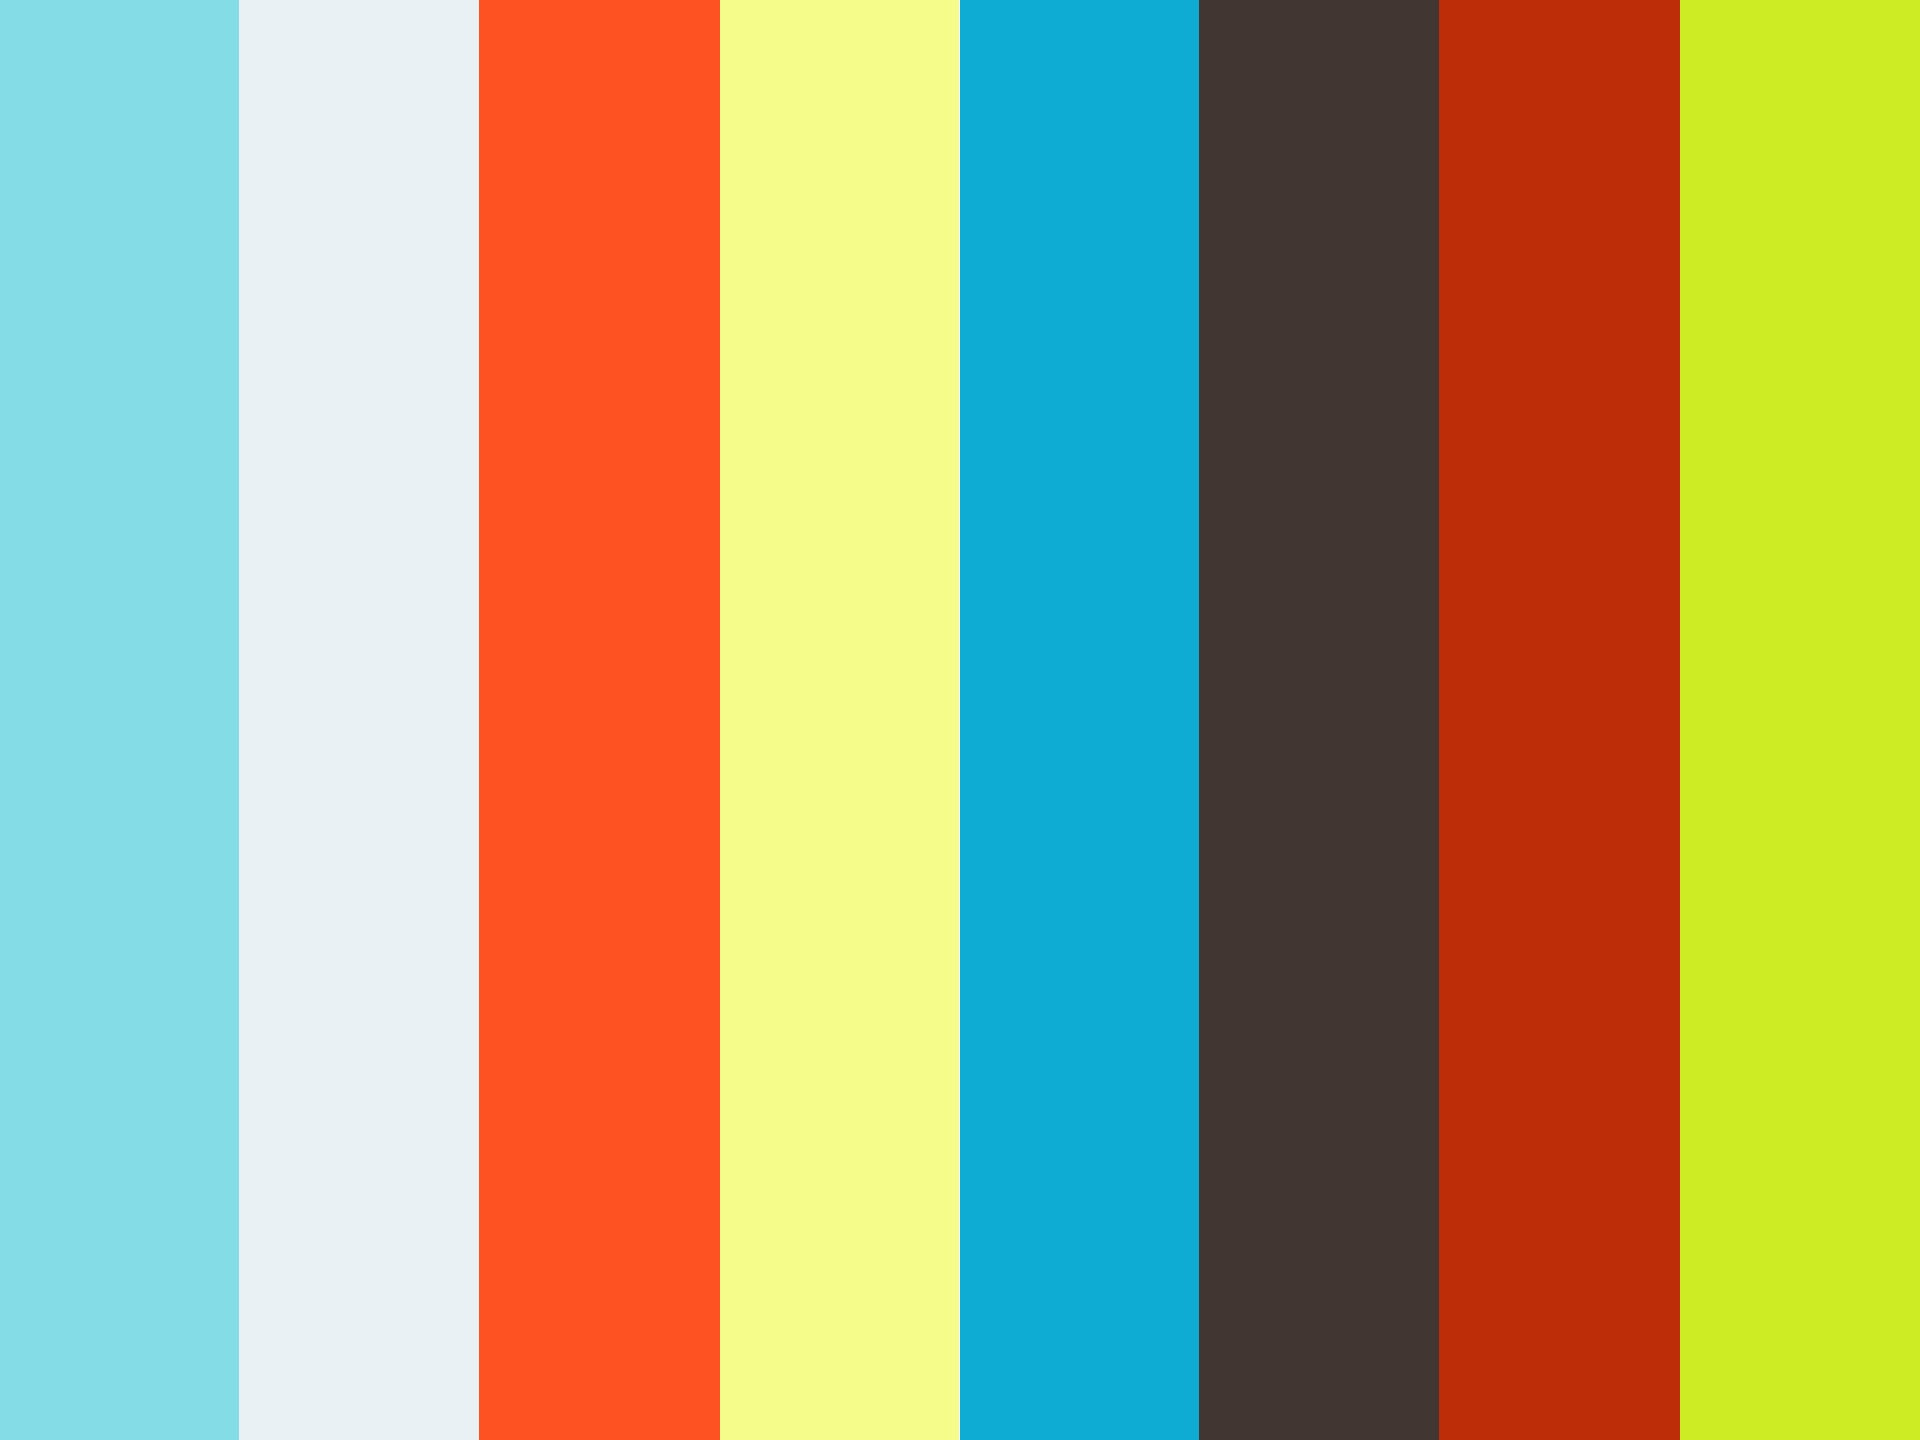 Robotic vs. Laparoscopic Resection for Rectal Cancer: The ROLARR Trial